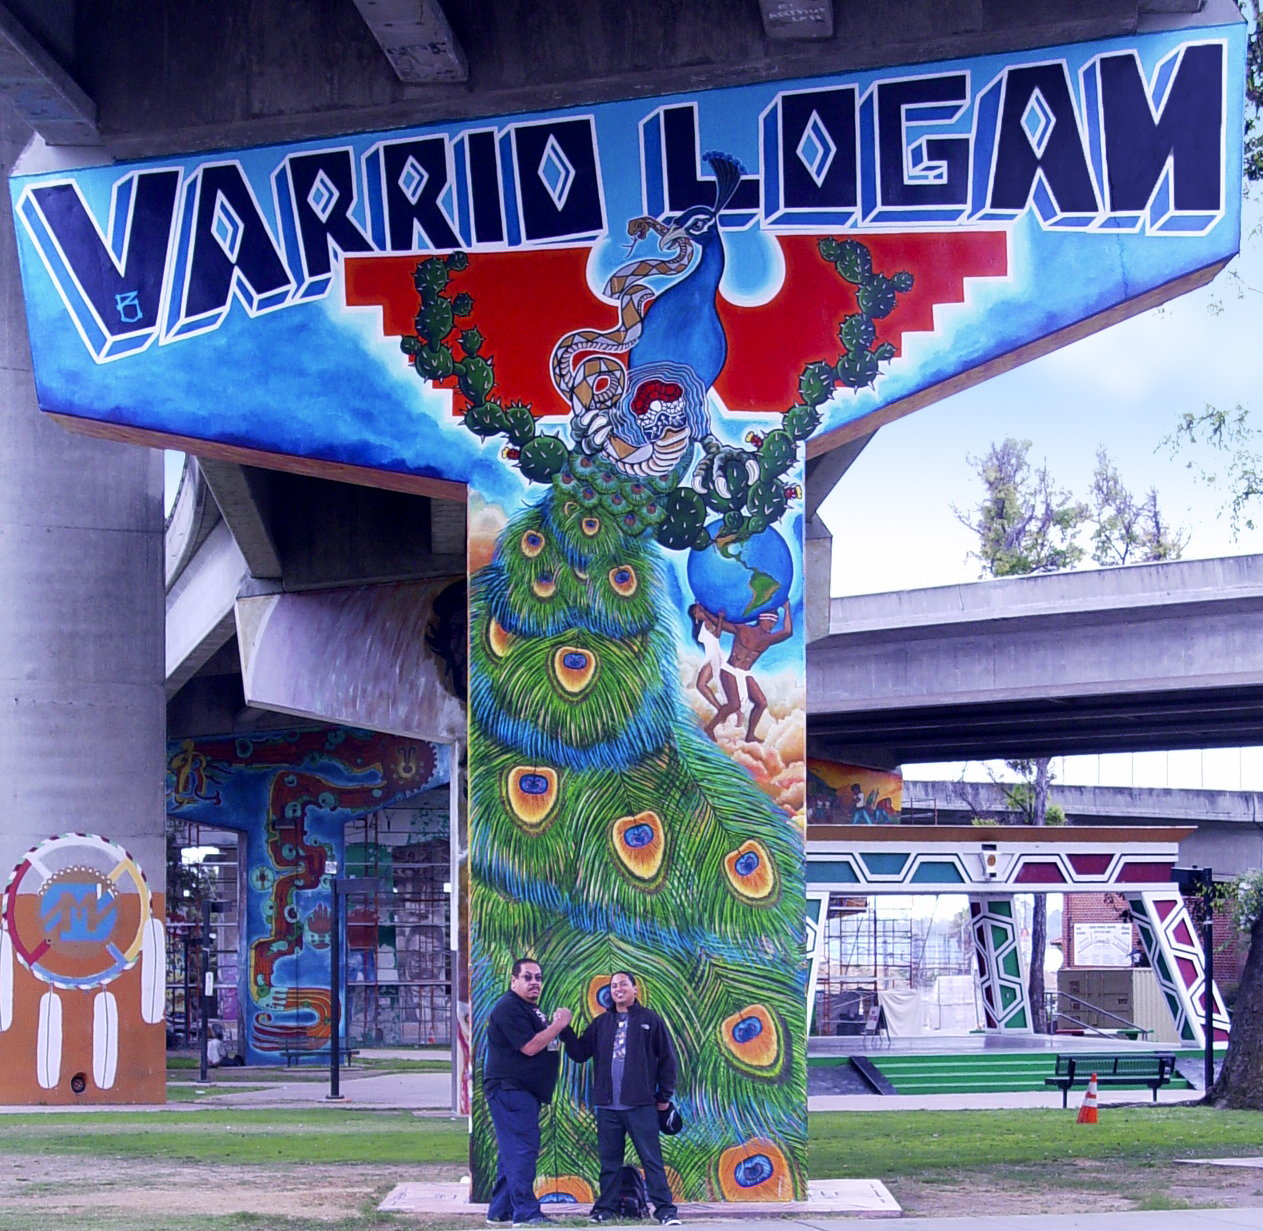 Varrio logan final mural revitalized in chicano park for Chicano park mural